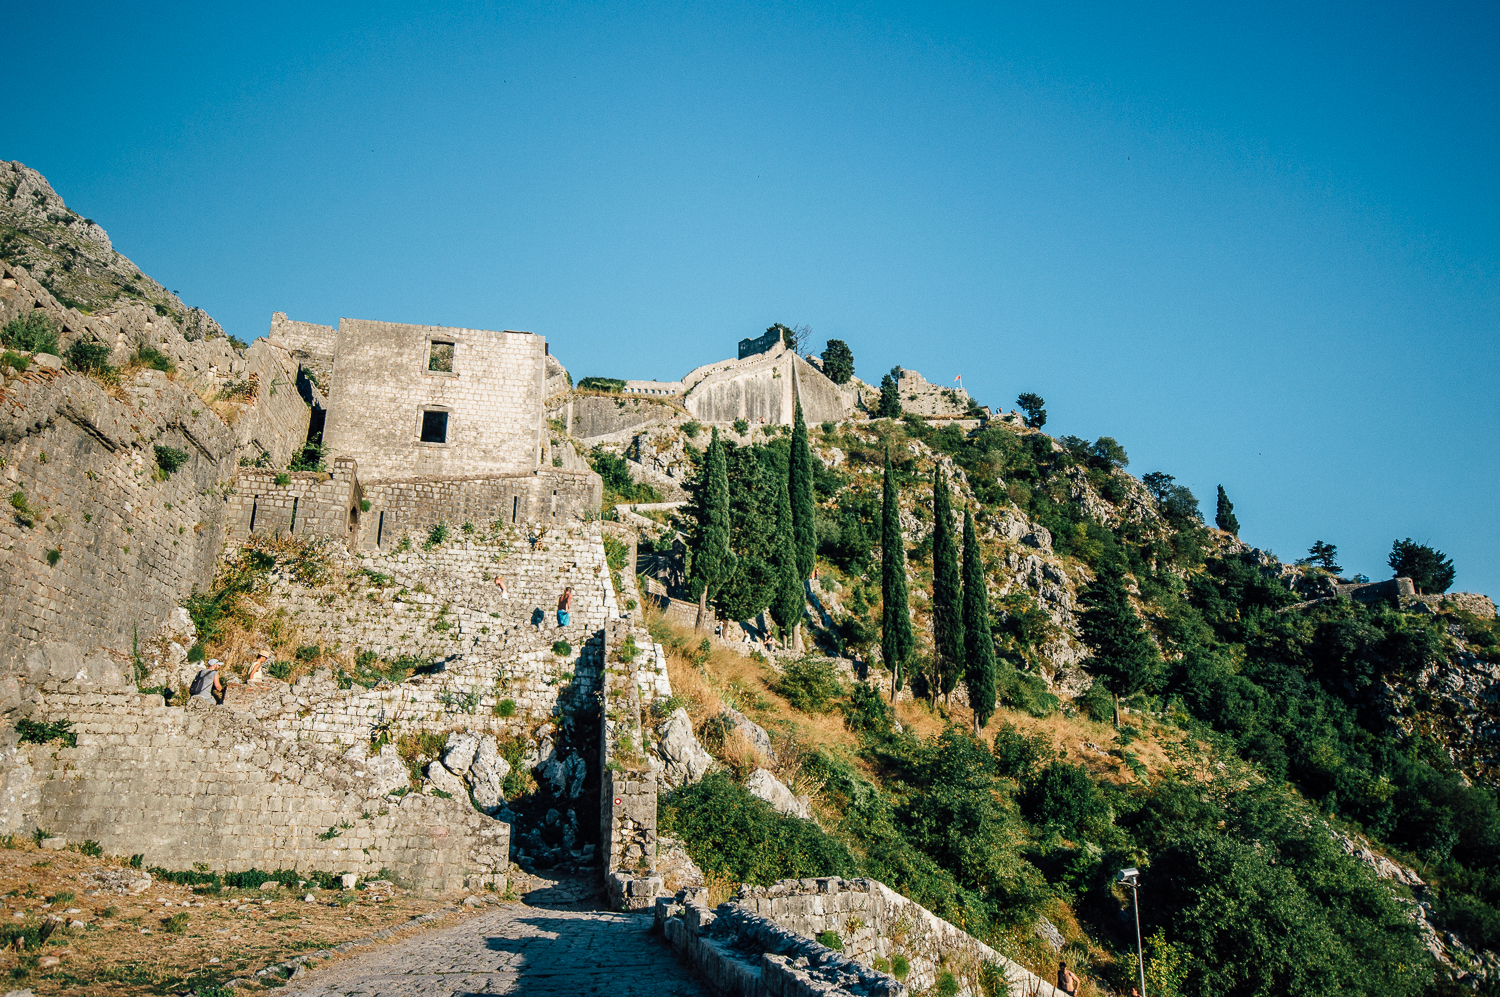 The beautiful walk up the fortress wall